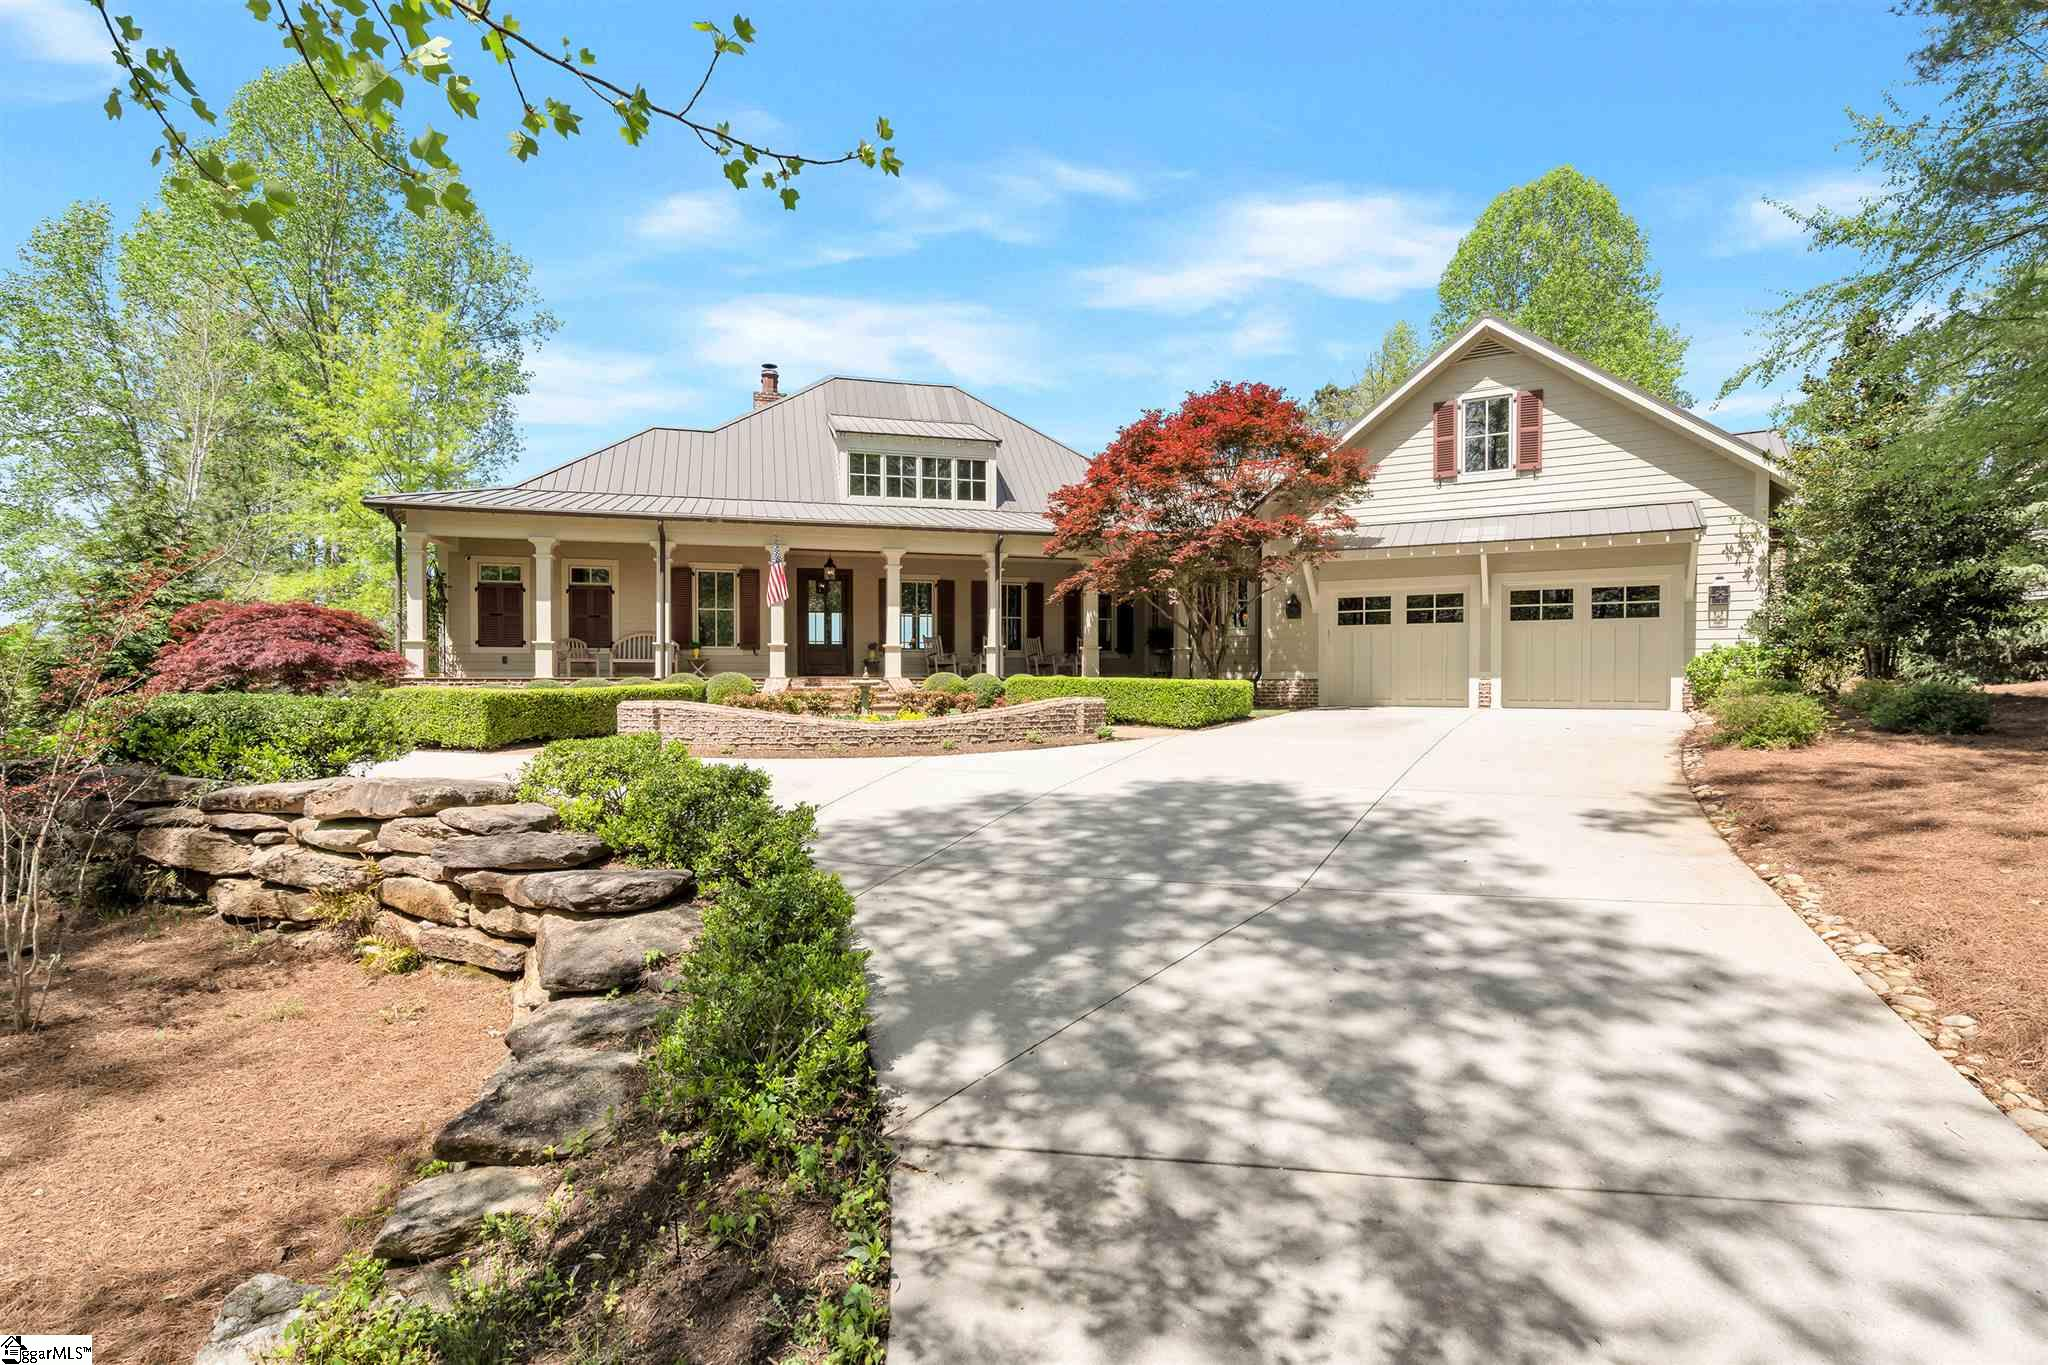 """Relax where elegance meets southern charm with spectacular views of the Blue Ridge Mountains and Lake Keowee! Built by the renowned Goodwin Foust Custom Homes, this 5,100 sq ft home features 4 bedrooms, 3.5 baths and inviting porches to enjoy views and time with friends and family.  The architecture delightfully balances low-country elements amidst unique mountain views, and it is surrounded by a private yard boasting lovely, manicured spaces.  Enjoy sitting on the front porch or one of the two spacious covered outdoor living spaces with friends and family while taking in the private quietness and views this estate offers. Sophisticated luxury continues as you enter the home, where you are greeted by an open floor plan and great natural light.  The home features 3 solid masonry fireplaces with iron screens crafted by local artisans, custom light fixtures throughout, 12"""" rear exterior wall for structural integrity, and 8' solid doors.  You will find honed granite countertops and custom cabinetry in the true chef's kitchen. Prepare meals and entertain in a space filled with top-of-the-line amenities such as the Dacor six burner gas range with dual ovens, a Sub-Zero Refrigerator, convenient appliance drawers, two dishwashers, and an oversized island with a prep sink and dining area.  Start and end your day on the incredible FOUR SEASON porch that will be a family favorite with its blend of natural woods, bead board celling, brick fireplace, and expansive windows to enjoy the views. The BBQ patio with built-in 36-inch gas grill is located right outside the four season porch. Entertaining family and guests has never been easier! On the main level you will also find the owners' suite featuring a tray ceiling and luxurious bath with heated floors. The owners' suite also enjoys custom, spacious closets and a conveniently located laundry room right next door.  On the lower level, featuring shiplap walls, 10' ceilings, and layered crown moldings, you will find a family room w"""